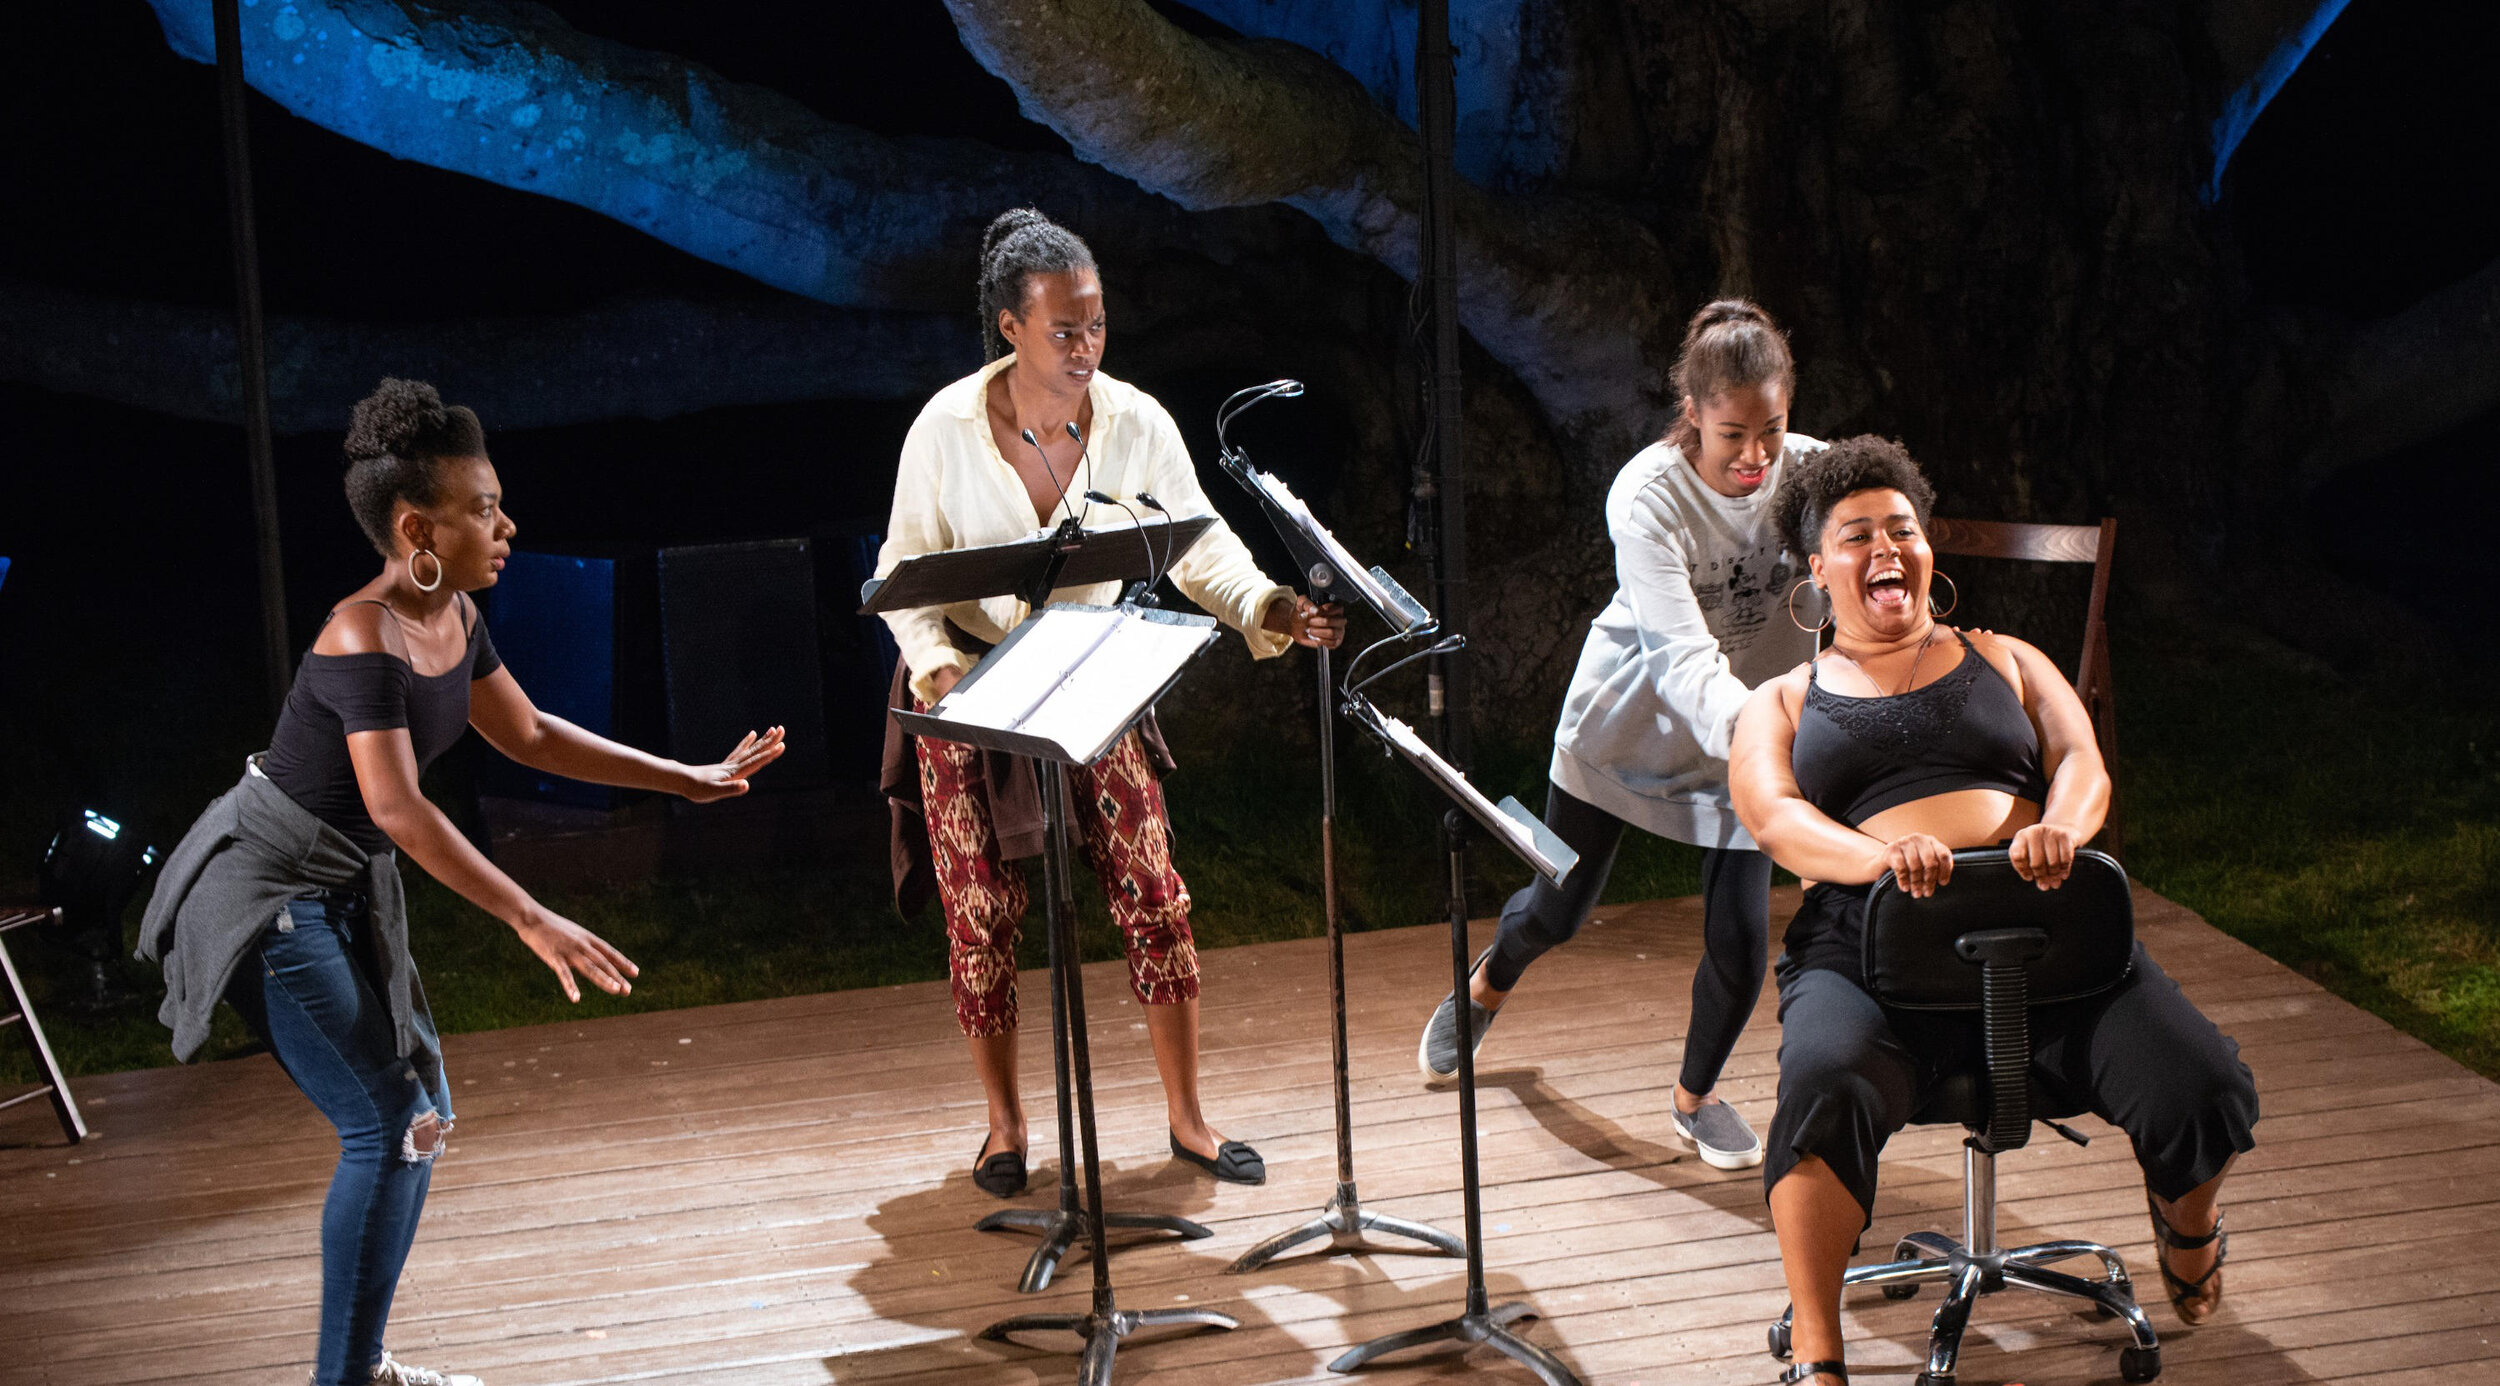 it's not a trip it's a journey  by Charly Evon Simpson at The Eugene O'Neill Theater Center Director: Nicole A. Watson | Dramaturg: Liz Frankel | Assistant Director: Leslie Roth  Cast: Deonna Bouye, Fedna Jacquet, Kita Updike & Cristina Pitter Photography: Isaak Berliner